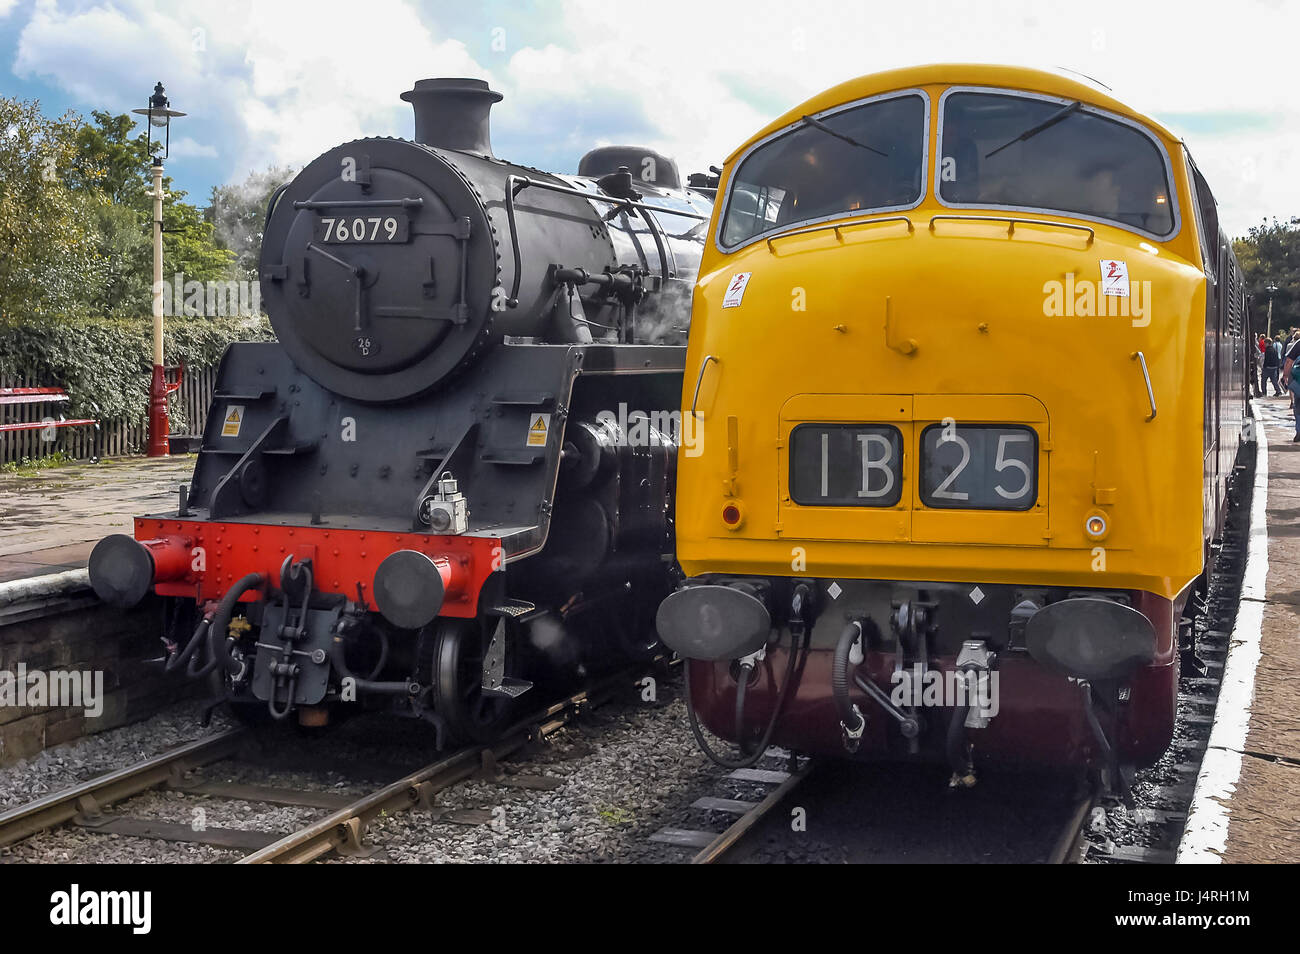 East Lancs railway steam trains at Ramsbottom station. Sept 2003 Steam loco The Dawlish Donkey and D832 is one of - Stock Image